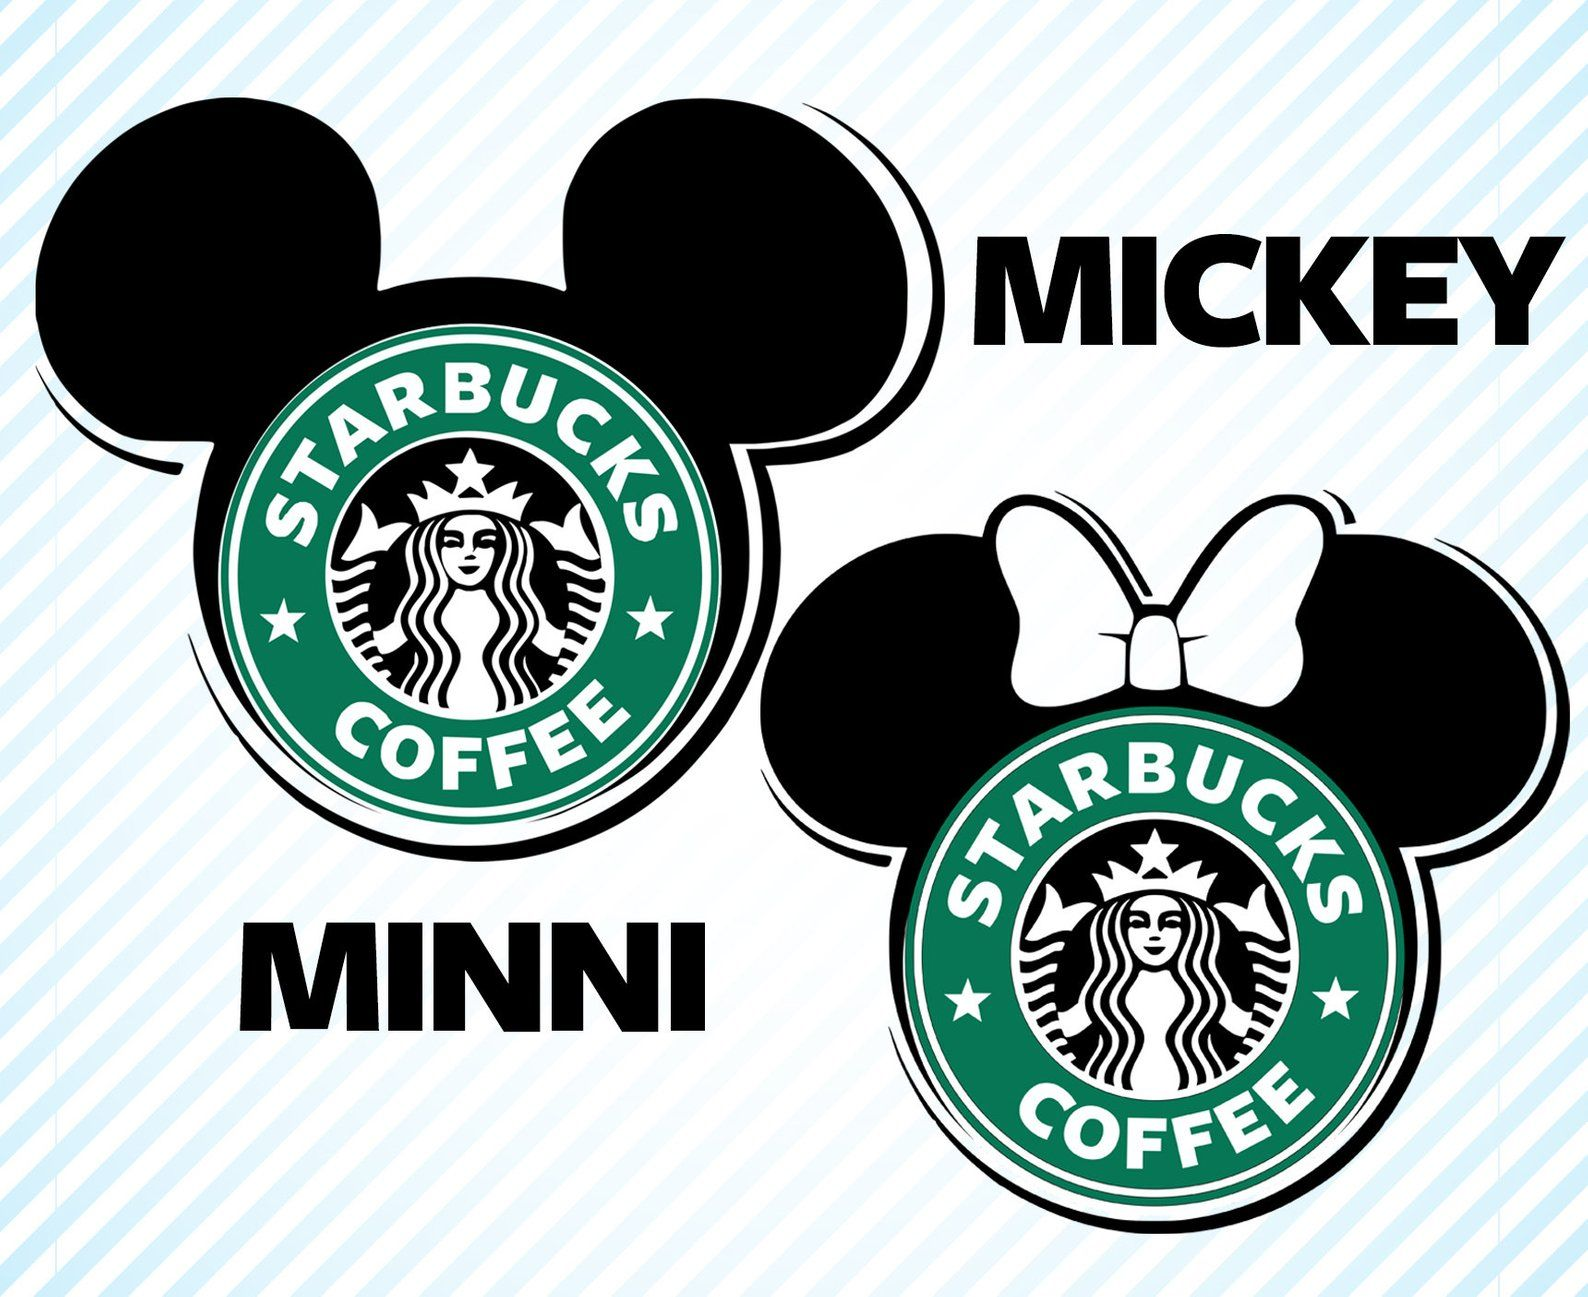 Starbucks svg Disney Starbucks svg file Starbucks svg